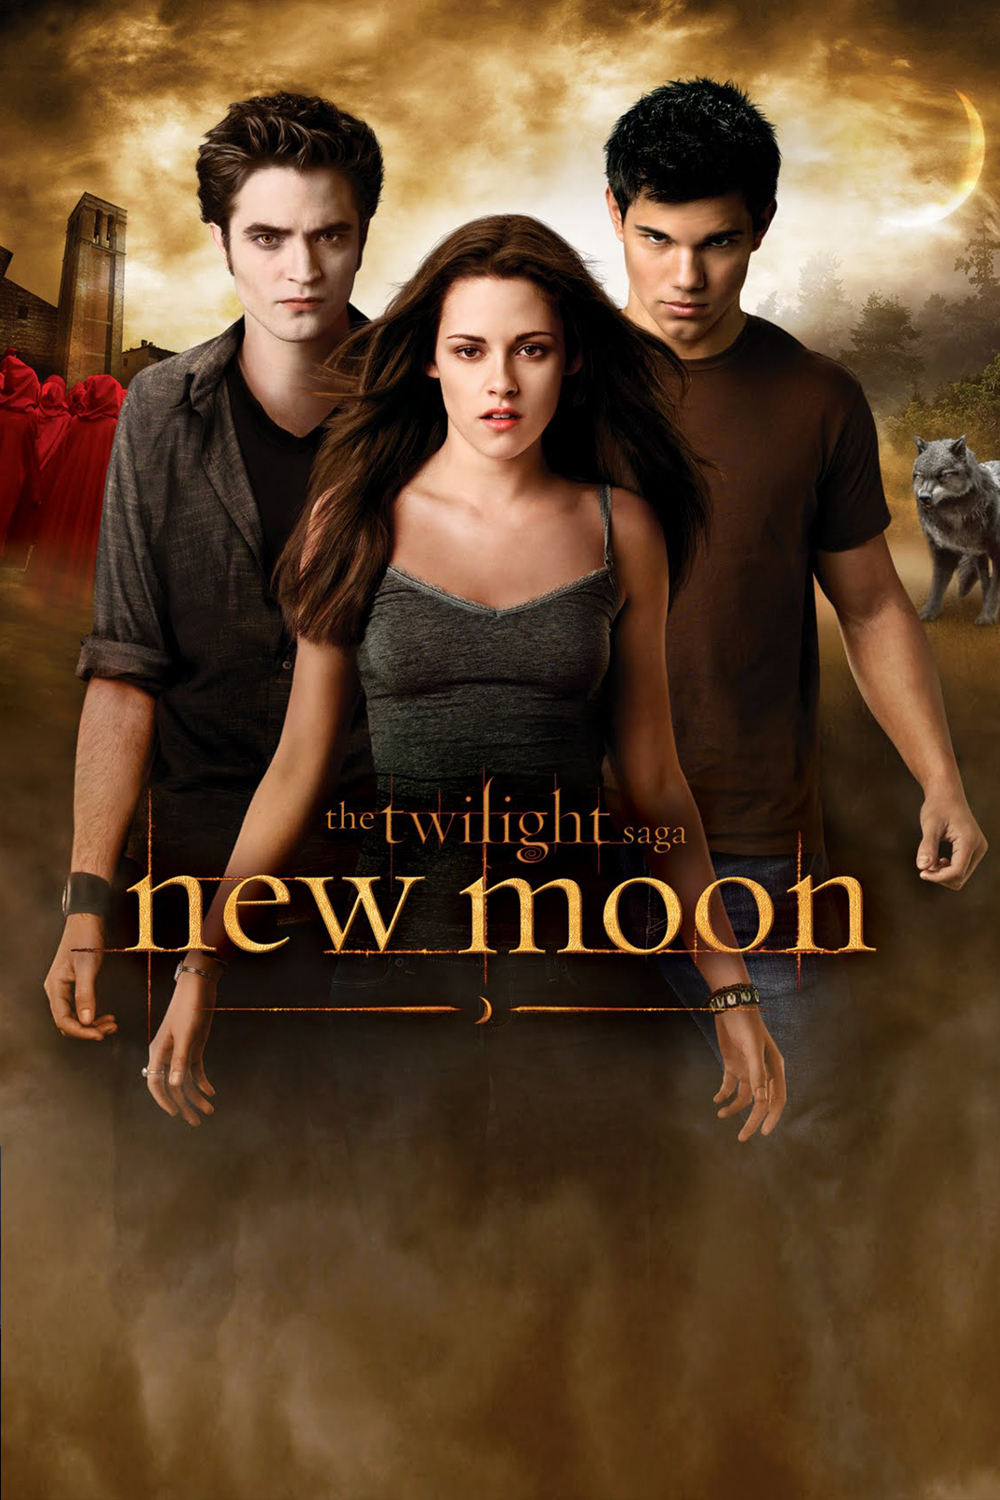 film review twilight Based on the first novel in stephenie meyer's freakishly popular young-adult  series, the film is a sickening portrait of teenage love at its most.